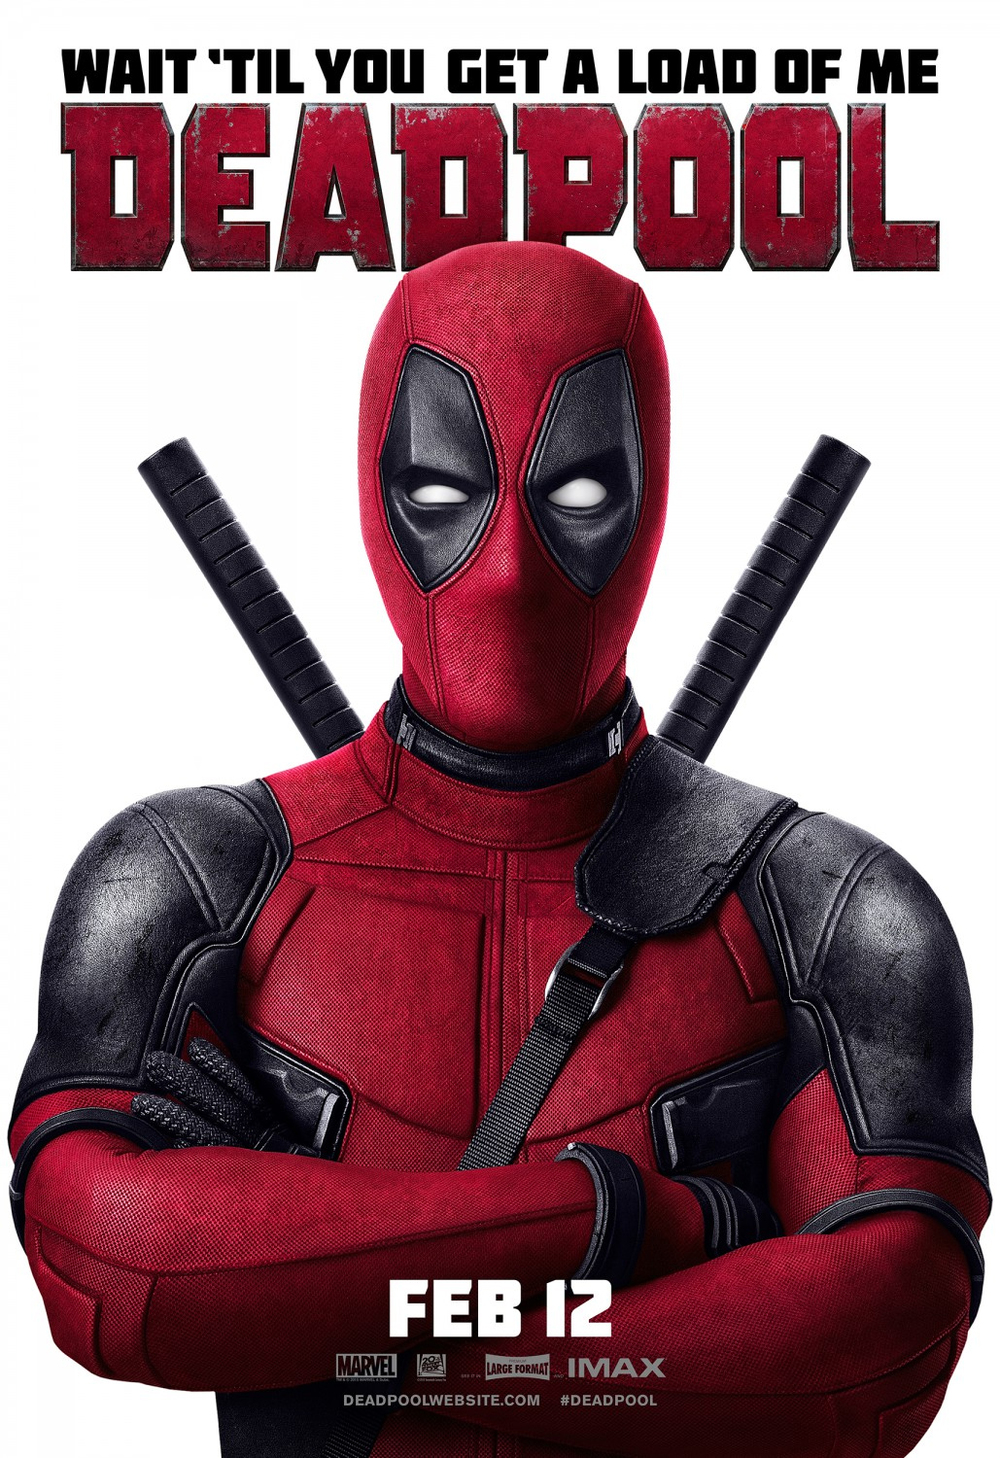 2016-deadpool-01-big.jpg